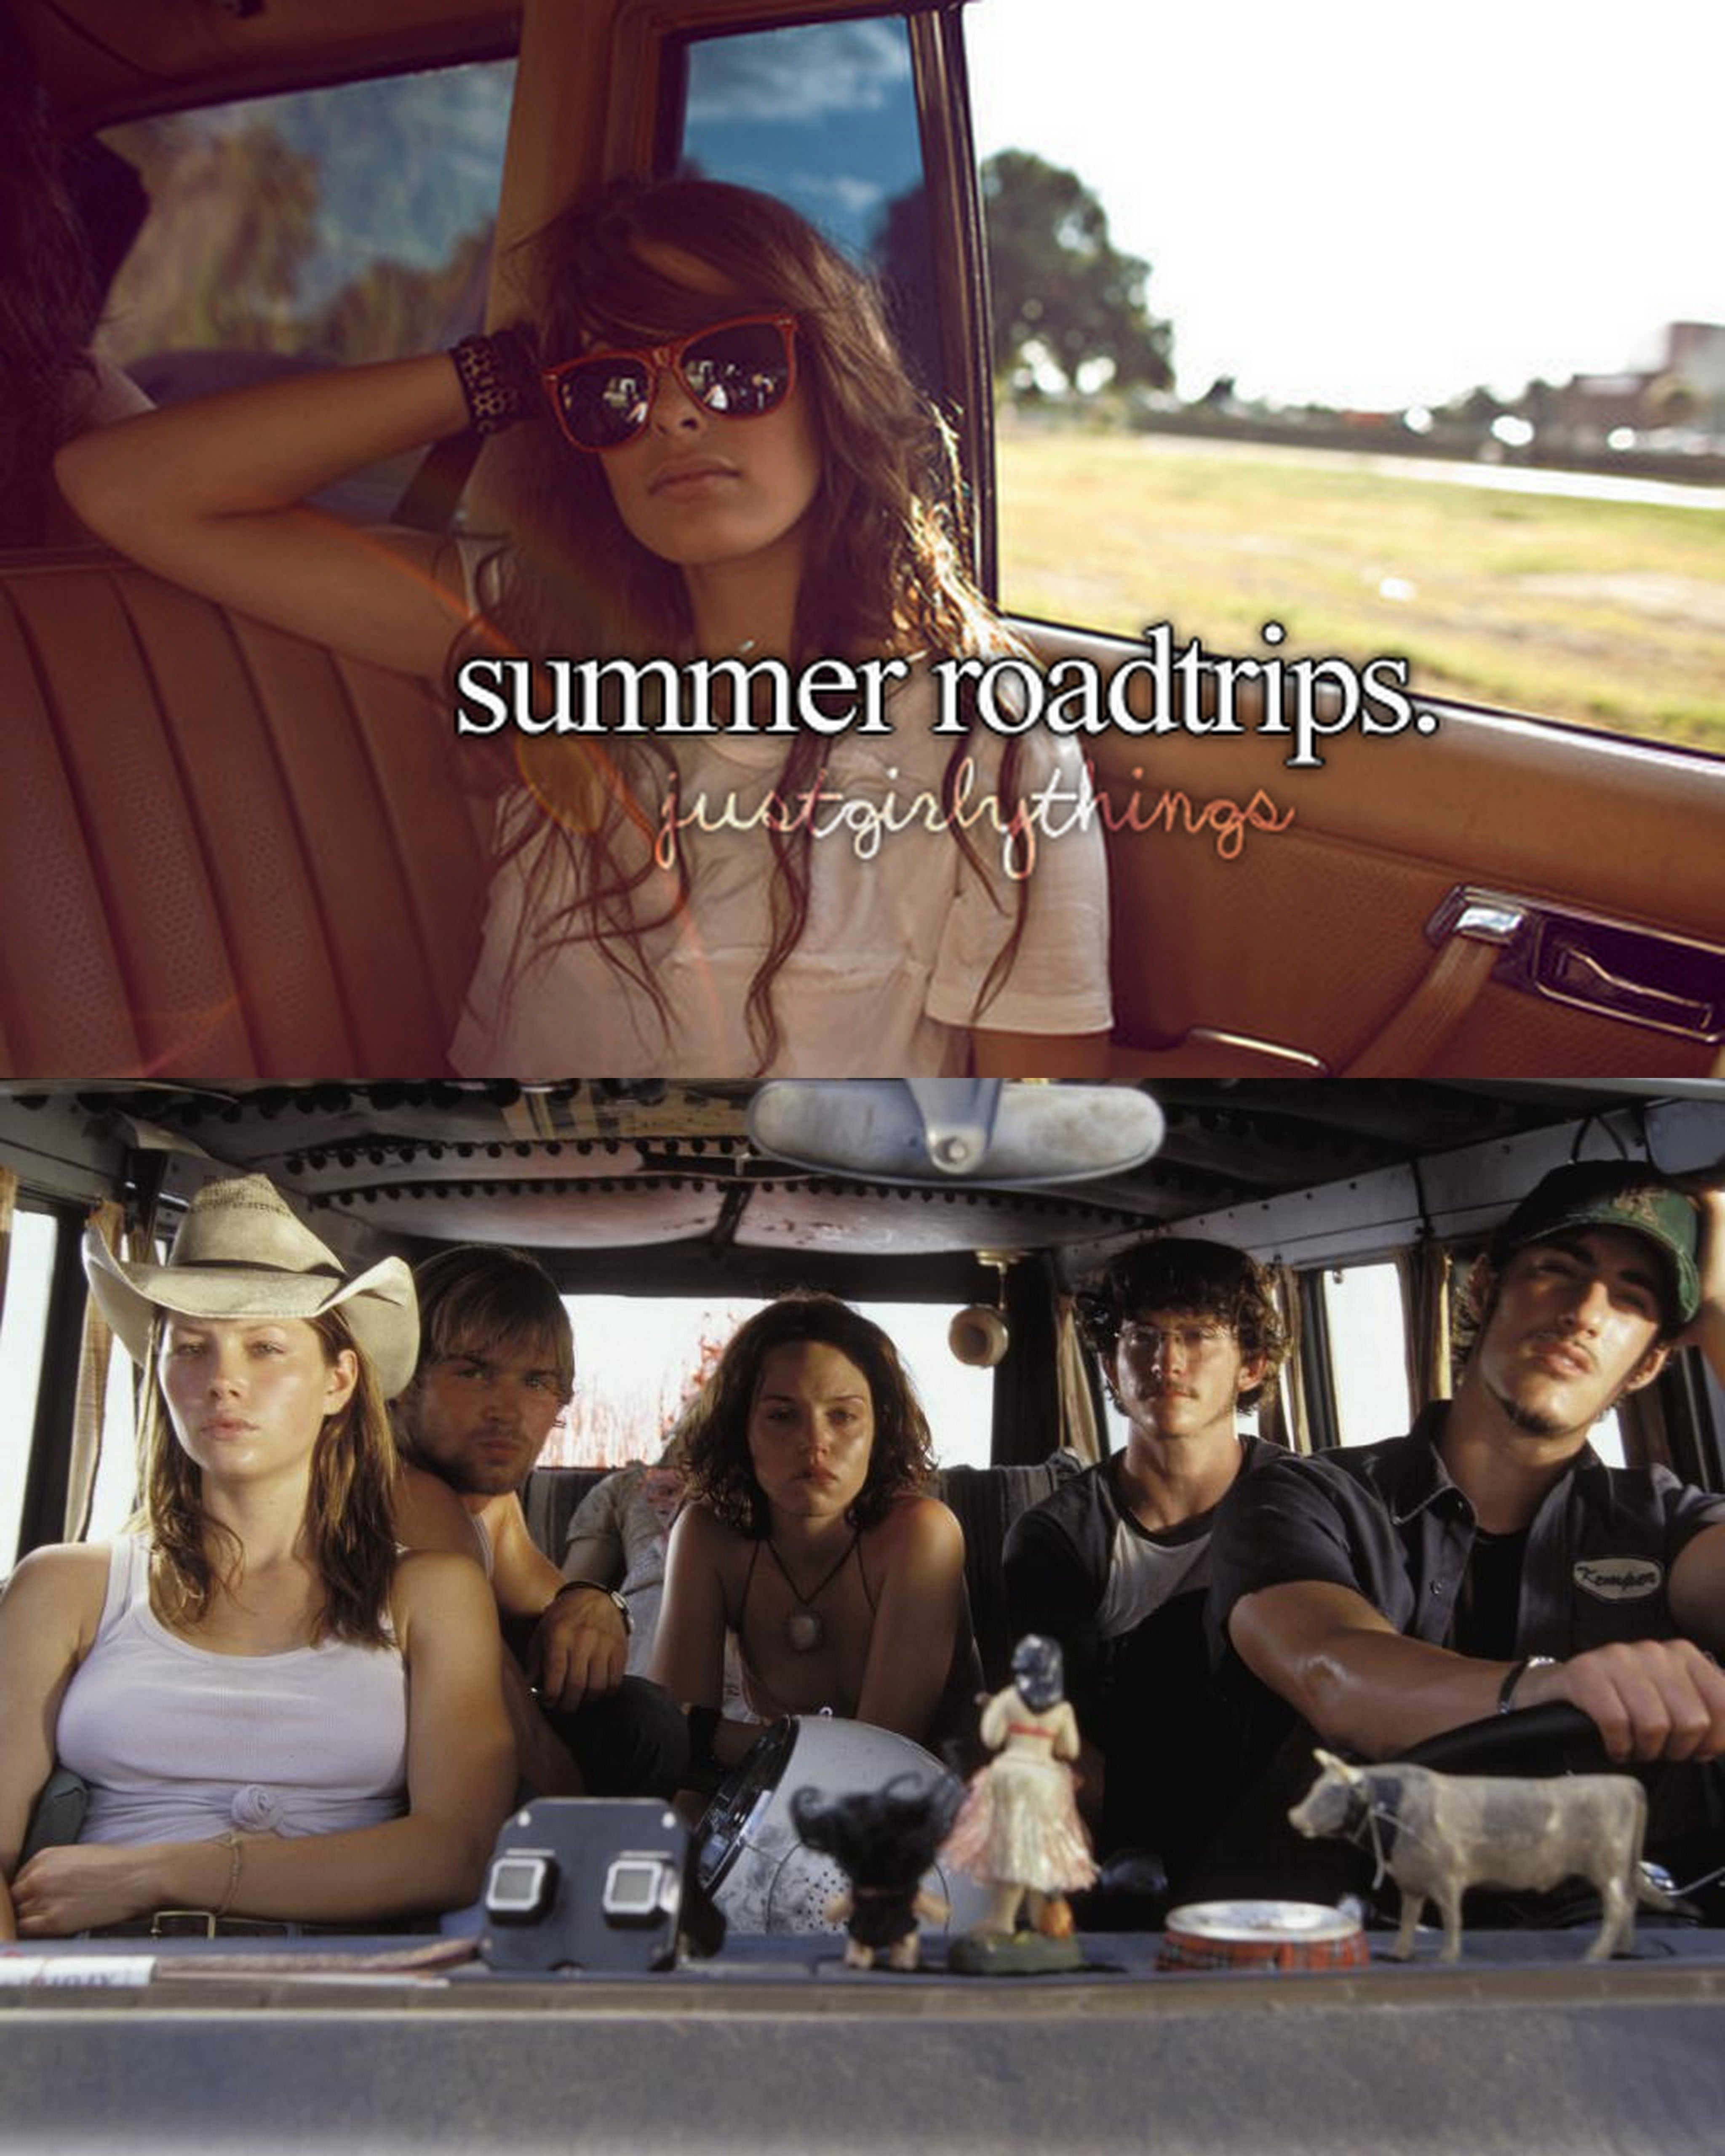 Just Girly Things Parodies